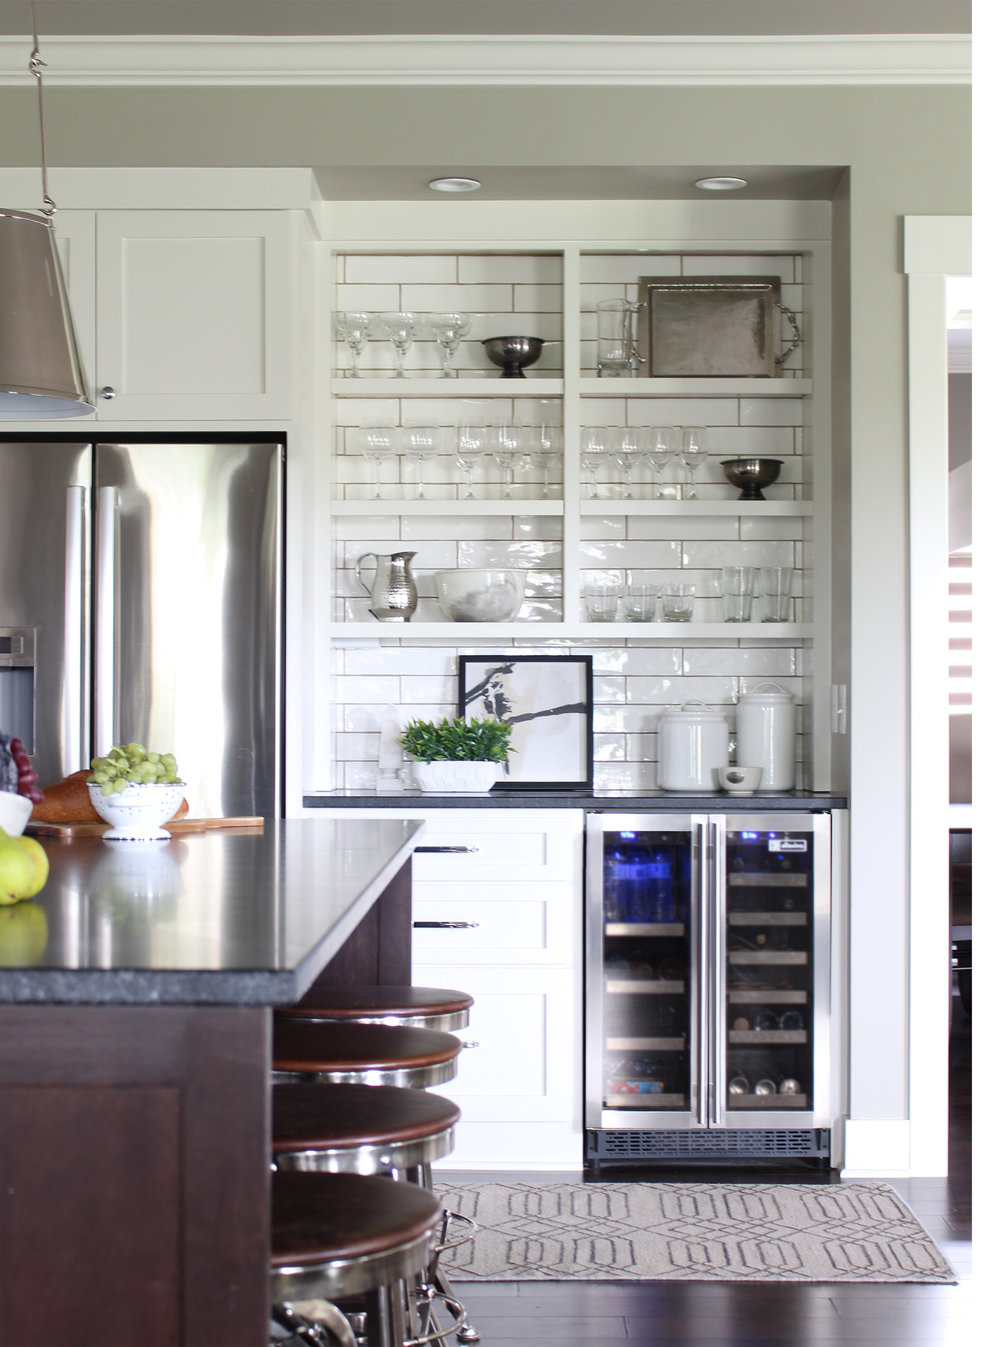 White Kitchen Shelves.jpg